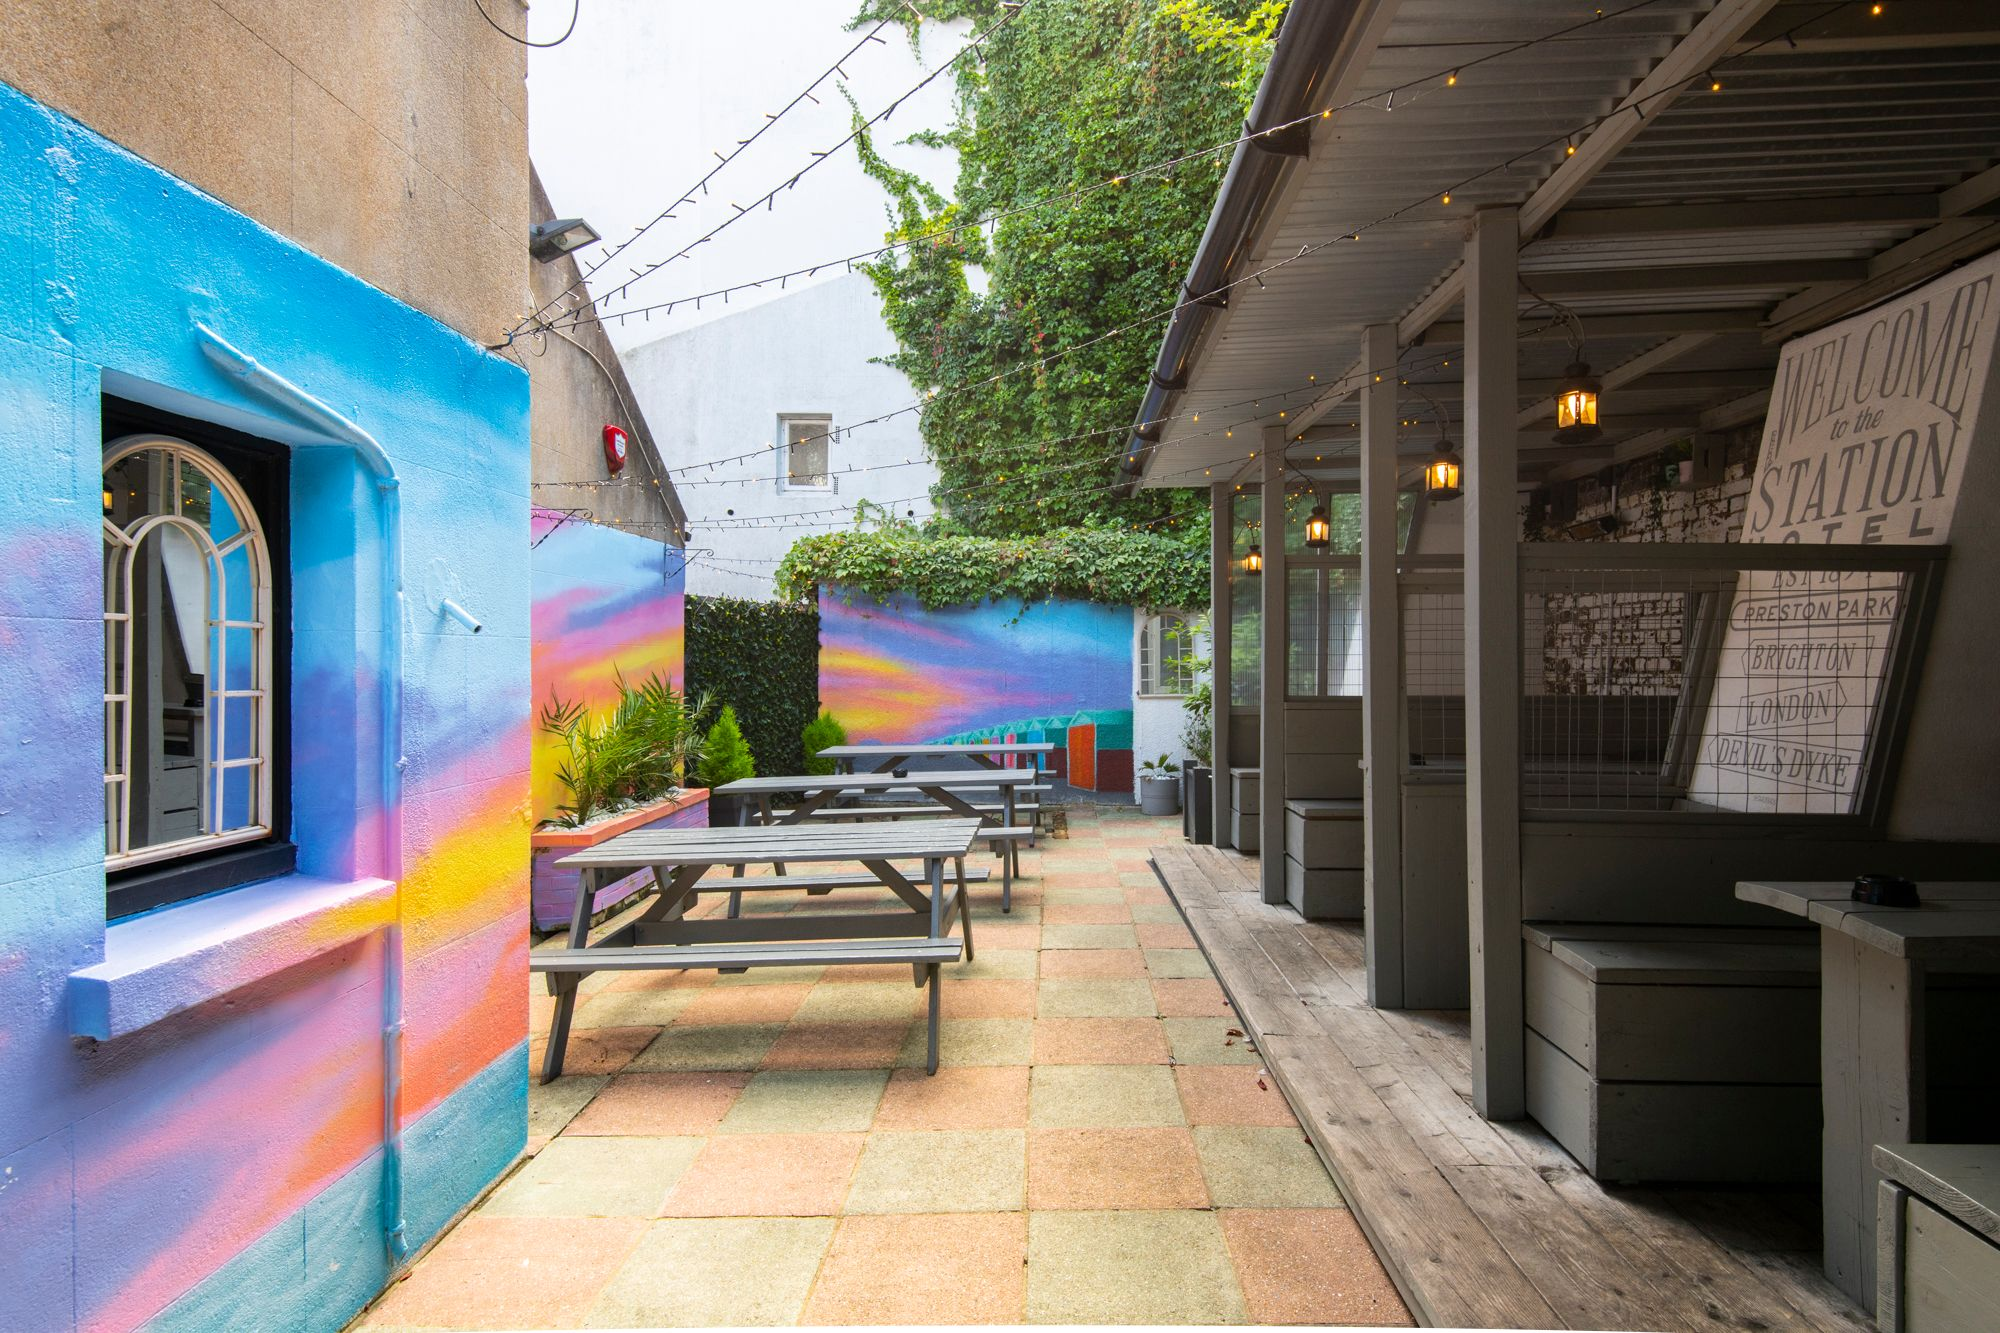 courtyard with colorful painted walls and private area with wooden benches